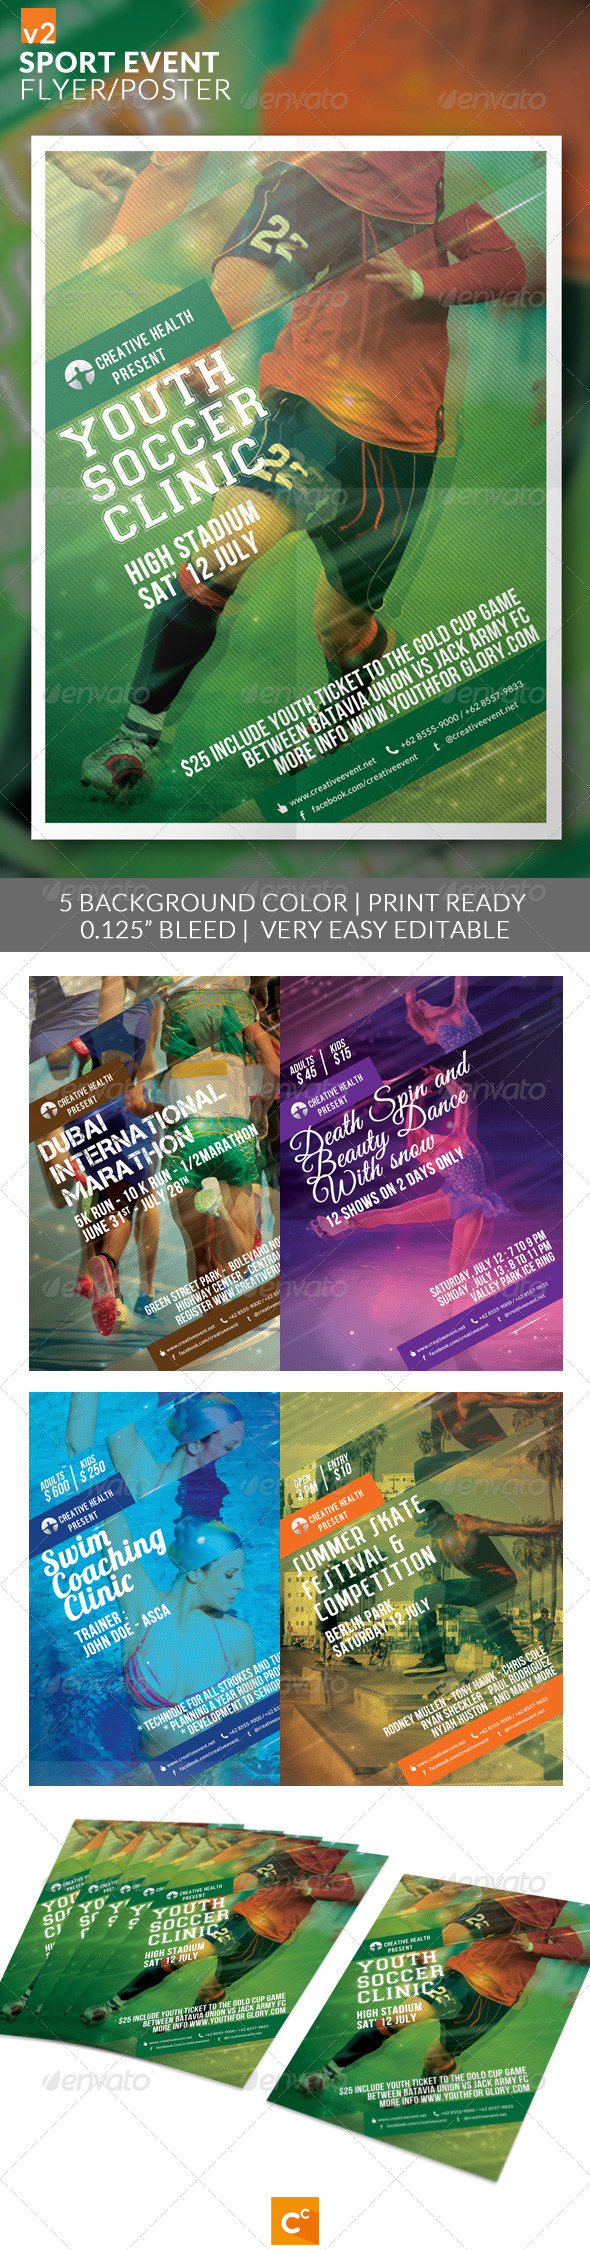 Sport Event Flyer/Poster v2 - Sports Events